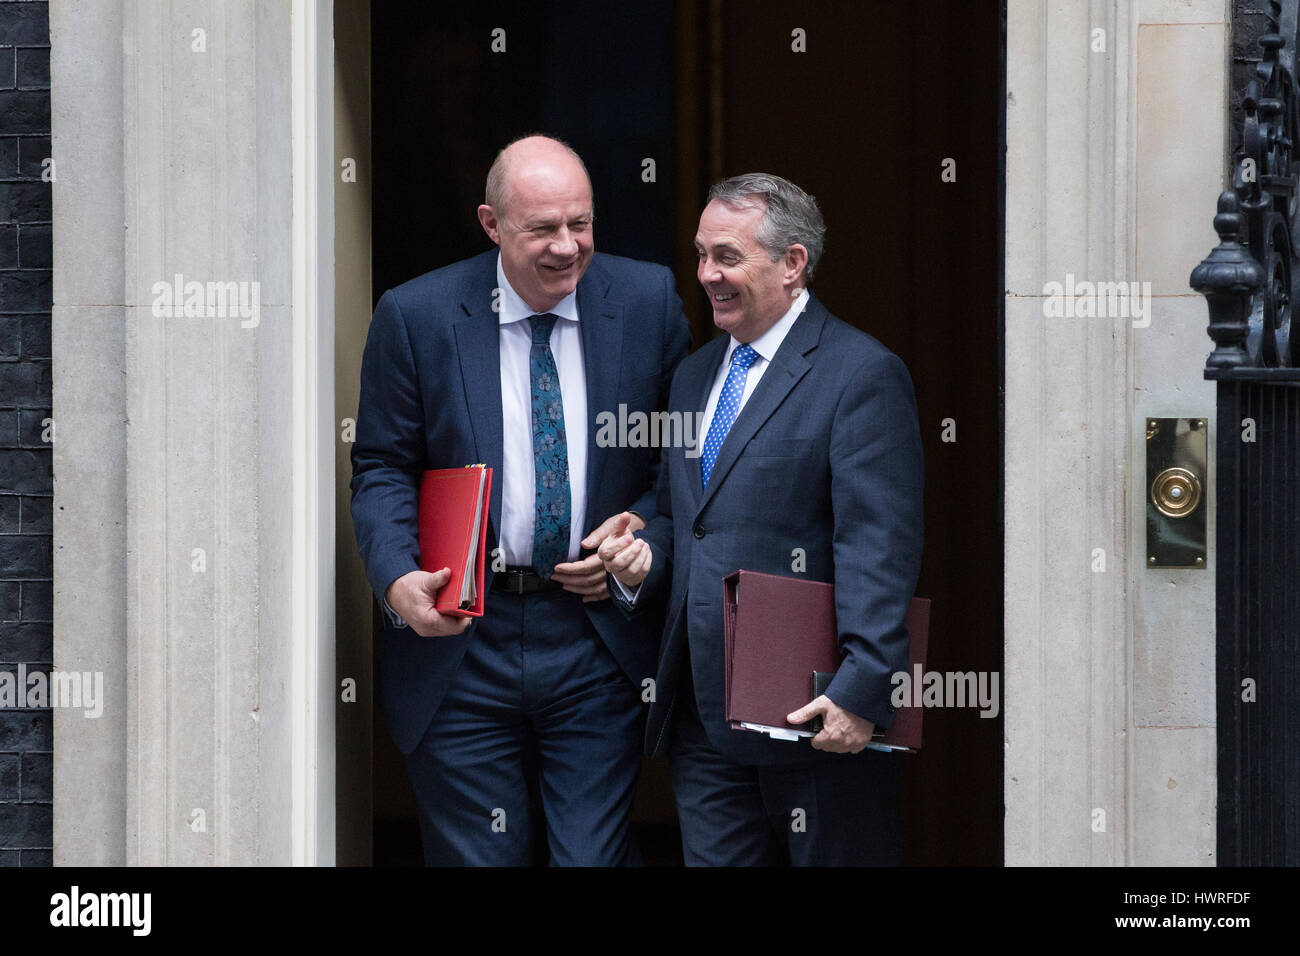 London, UK. 21st March, 2017. Damian Green MP, Secretary of State for Work and Pensions, and Liam Fox MP, Secretary - Stock Image